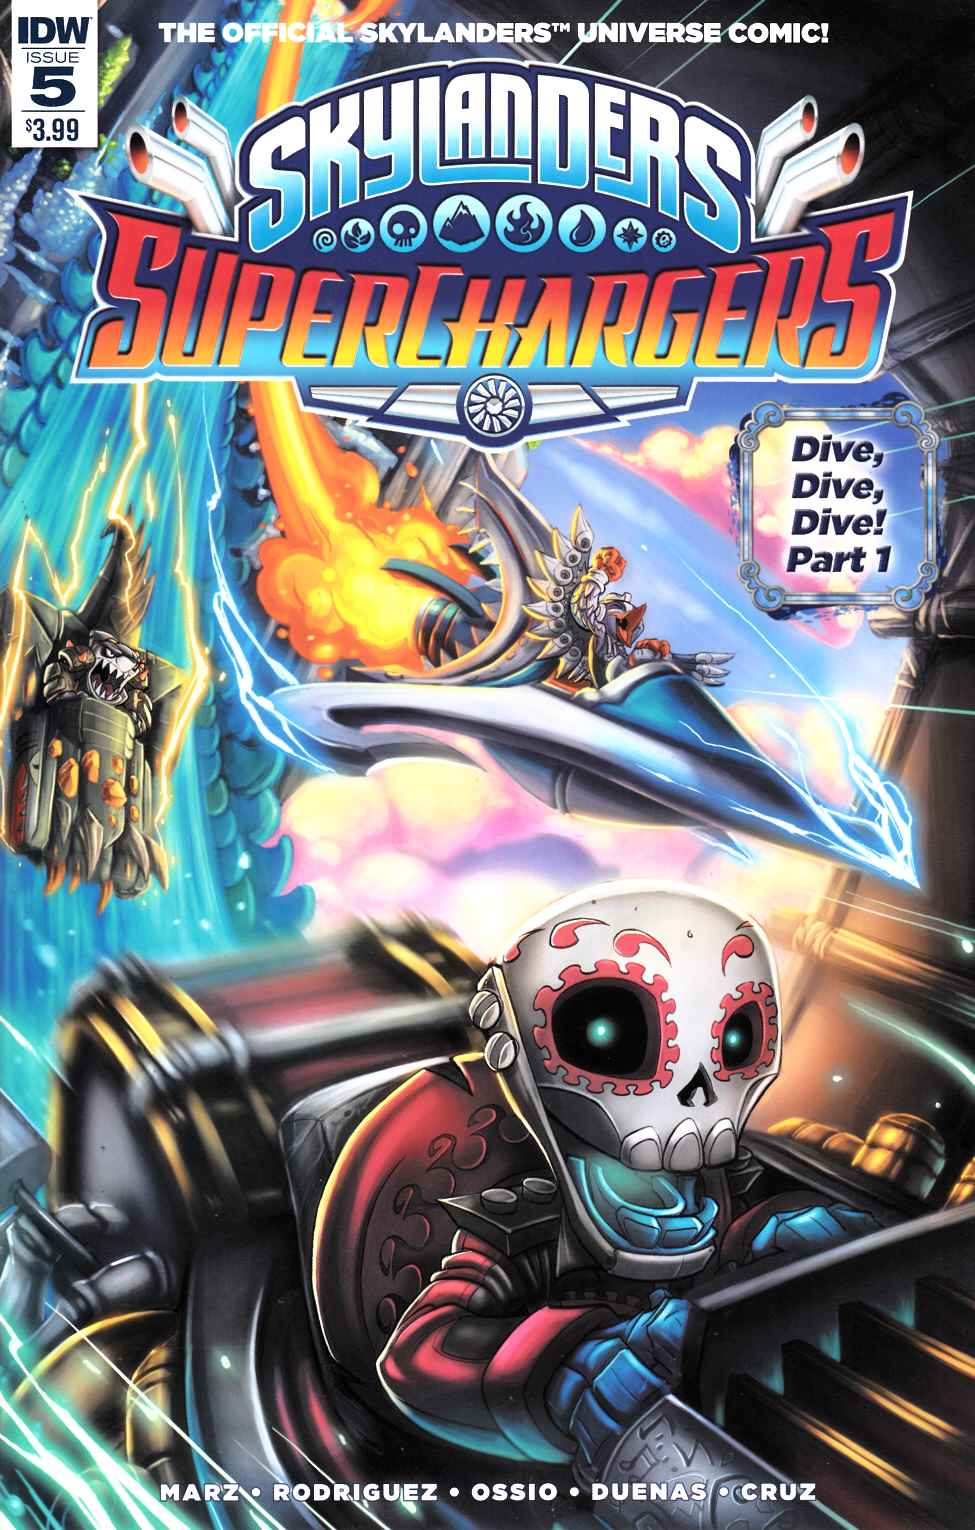 Skylanders Superchargers #5 [IDW Comic] THUMBNAIL